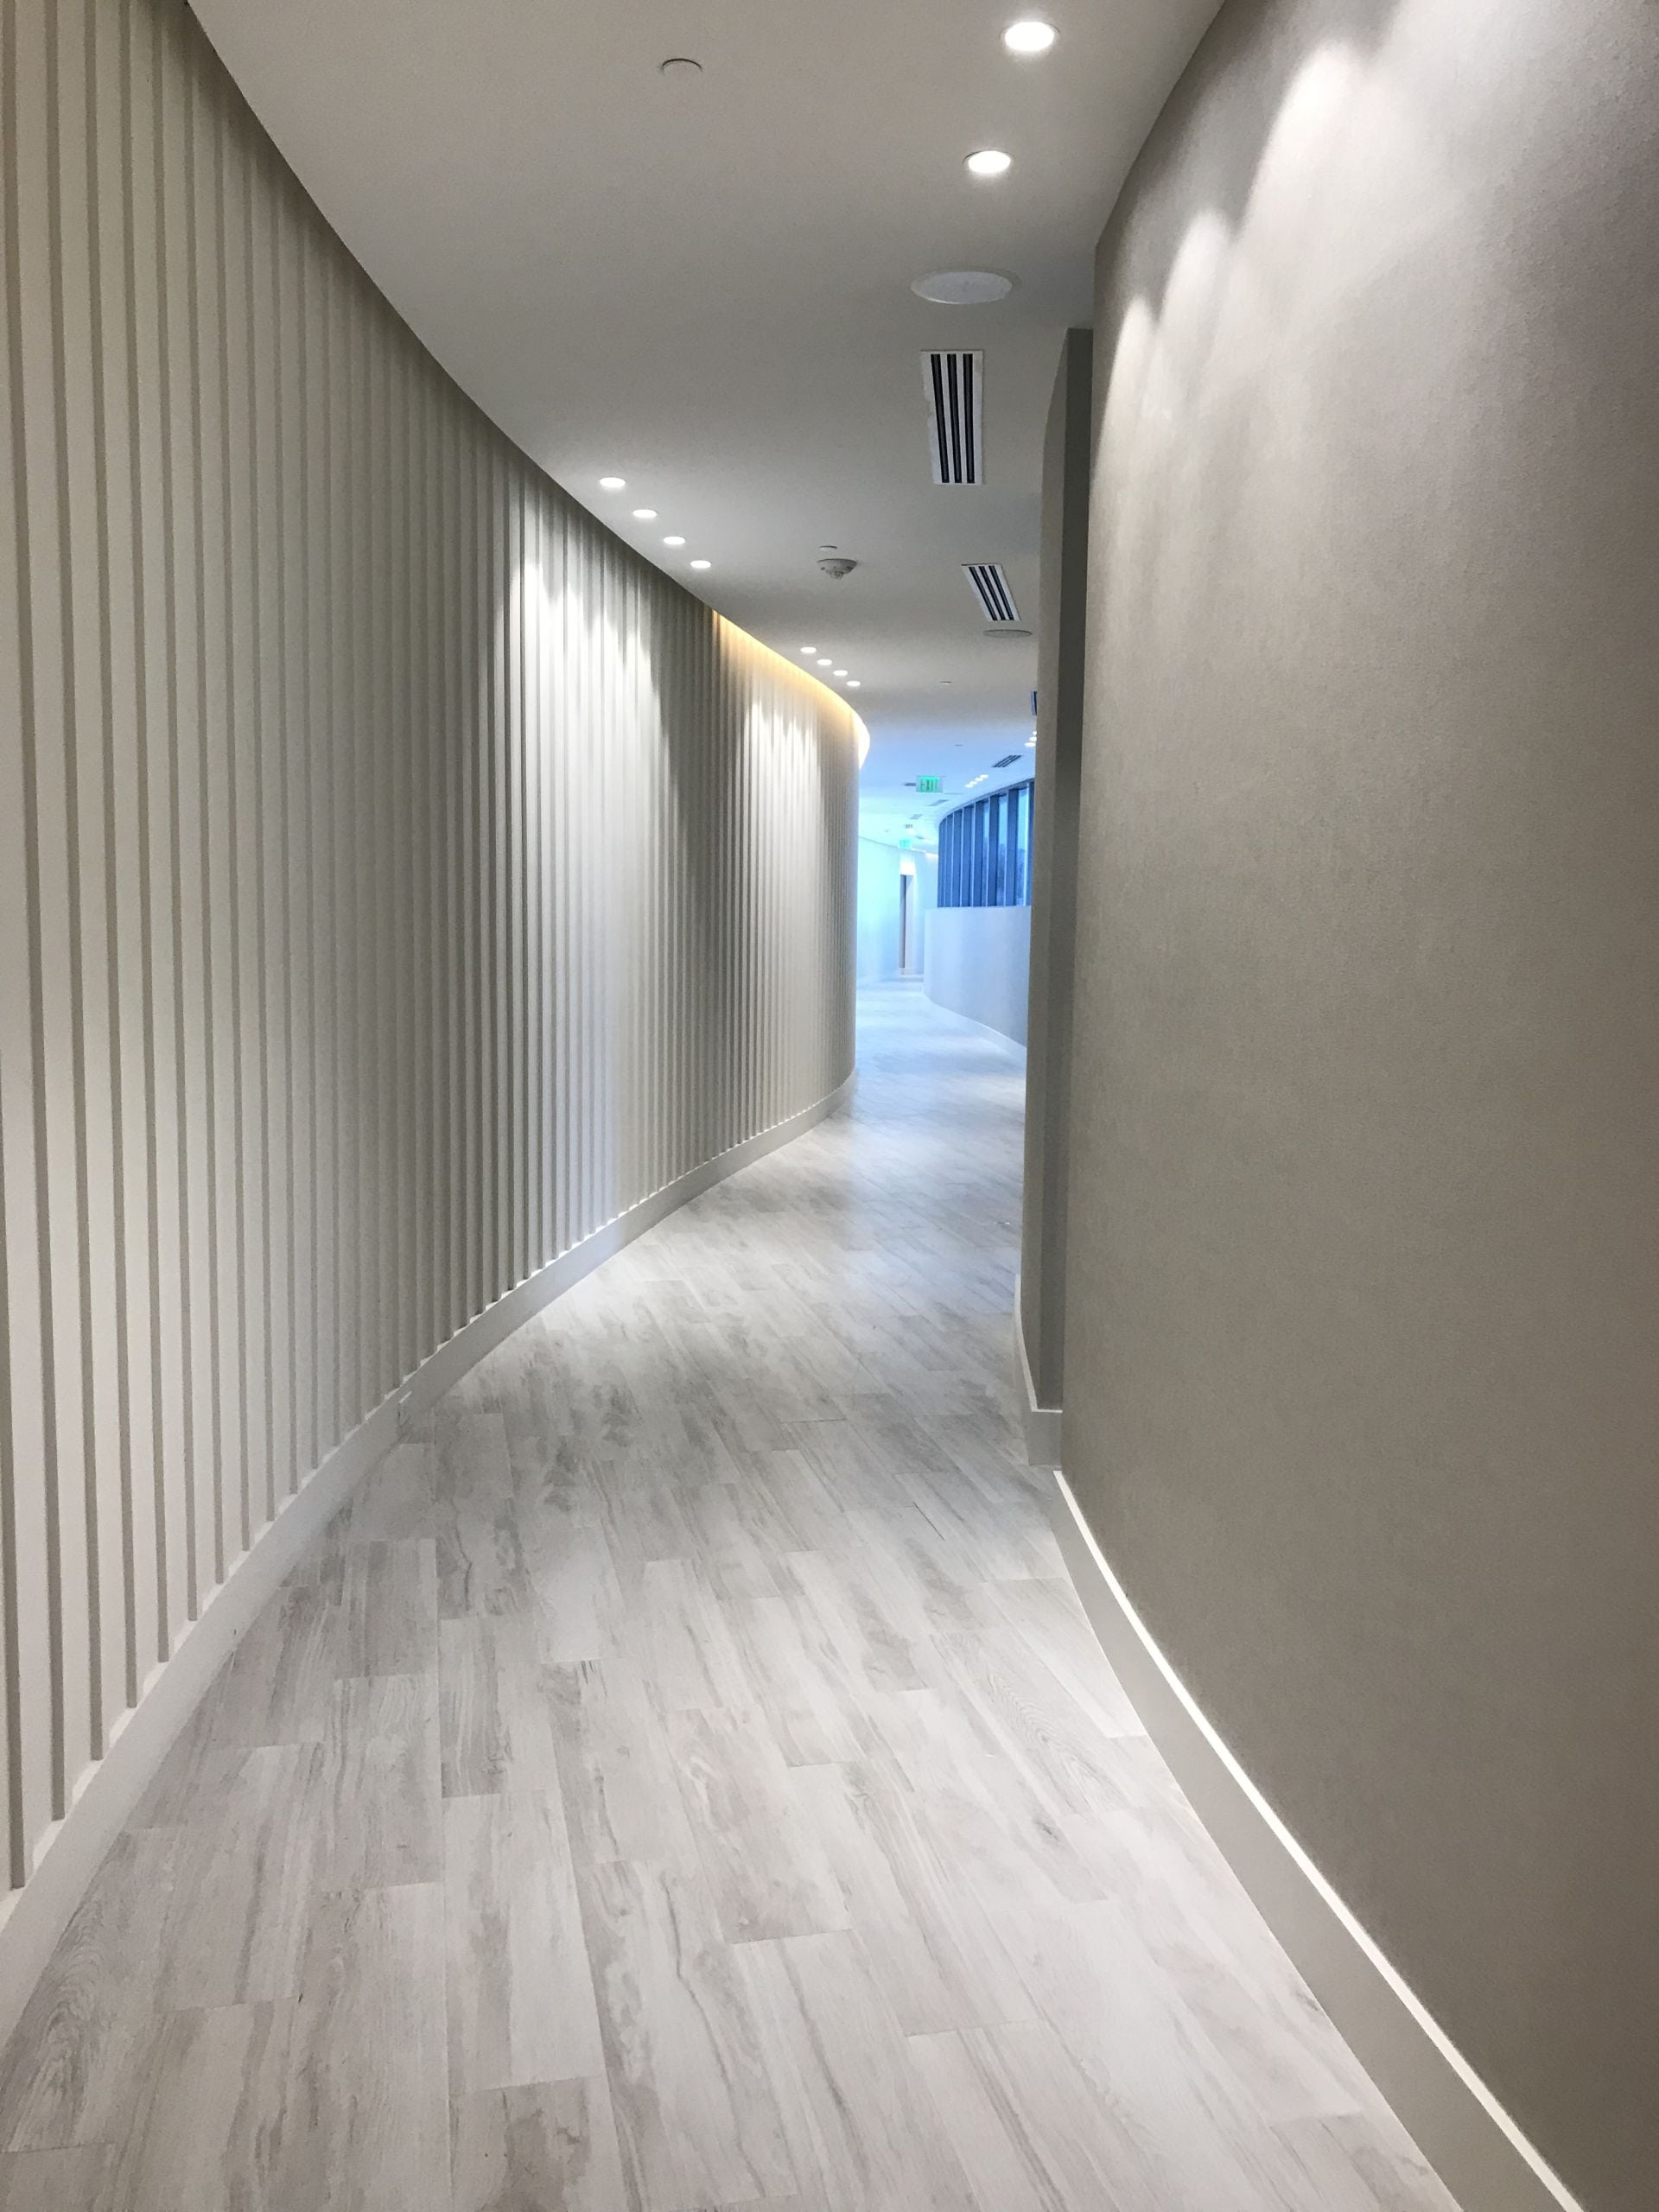 Park Grove hallway to amenities